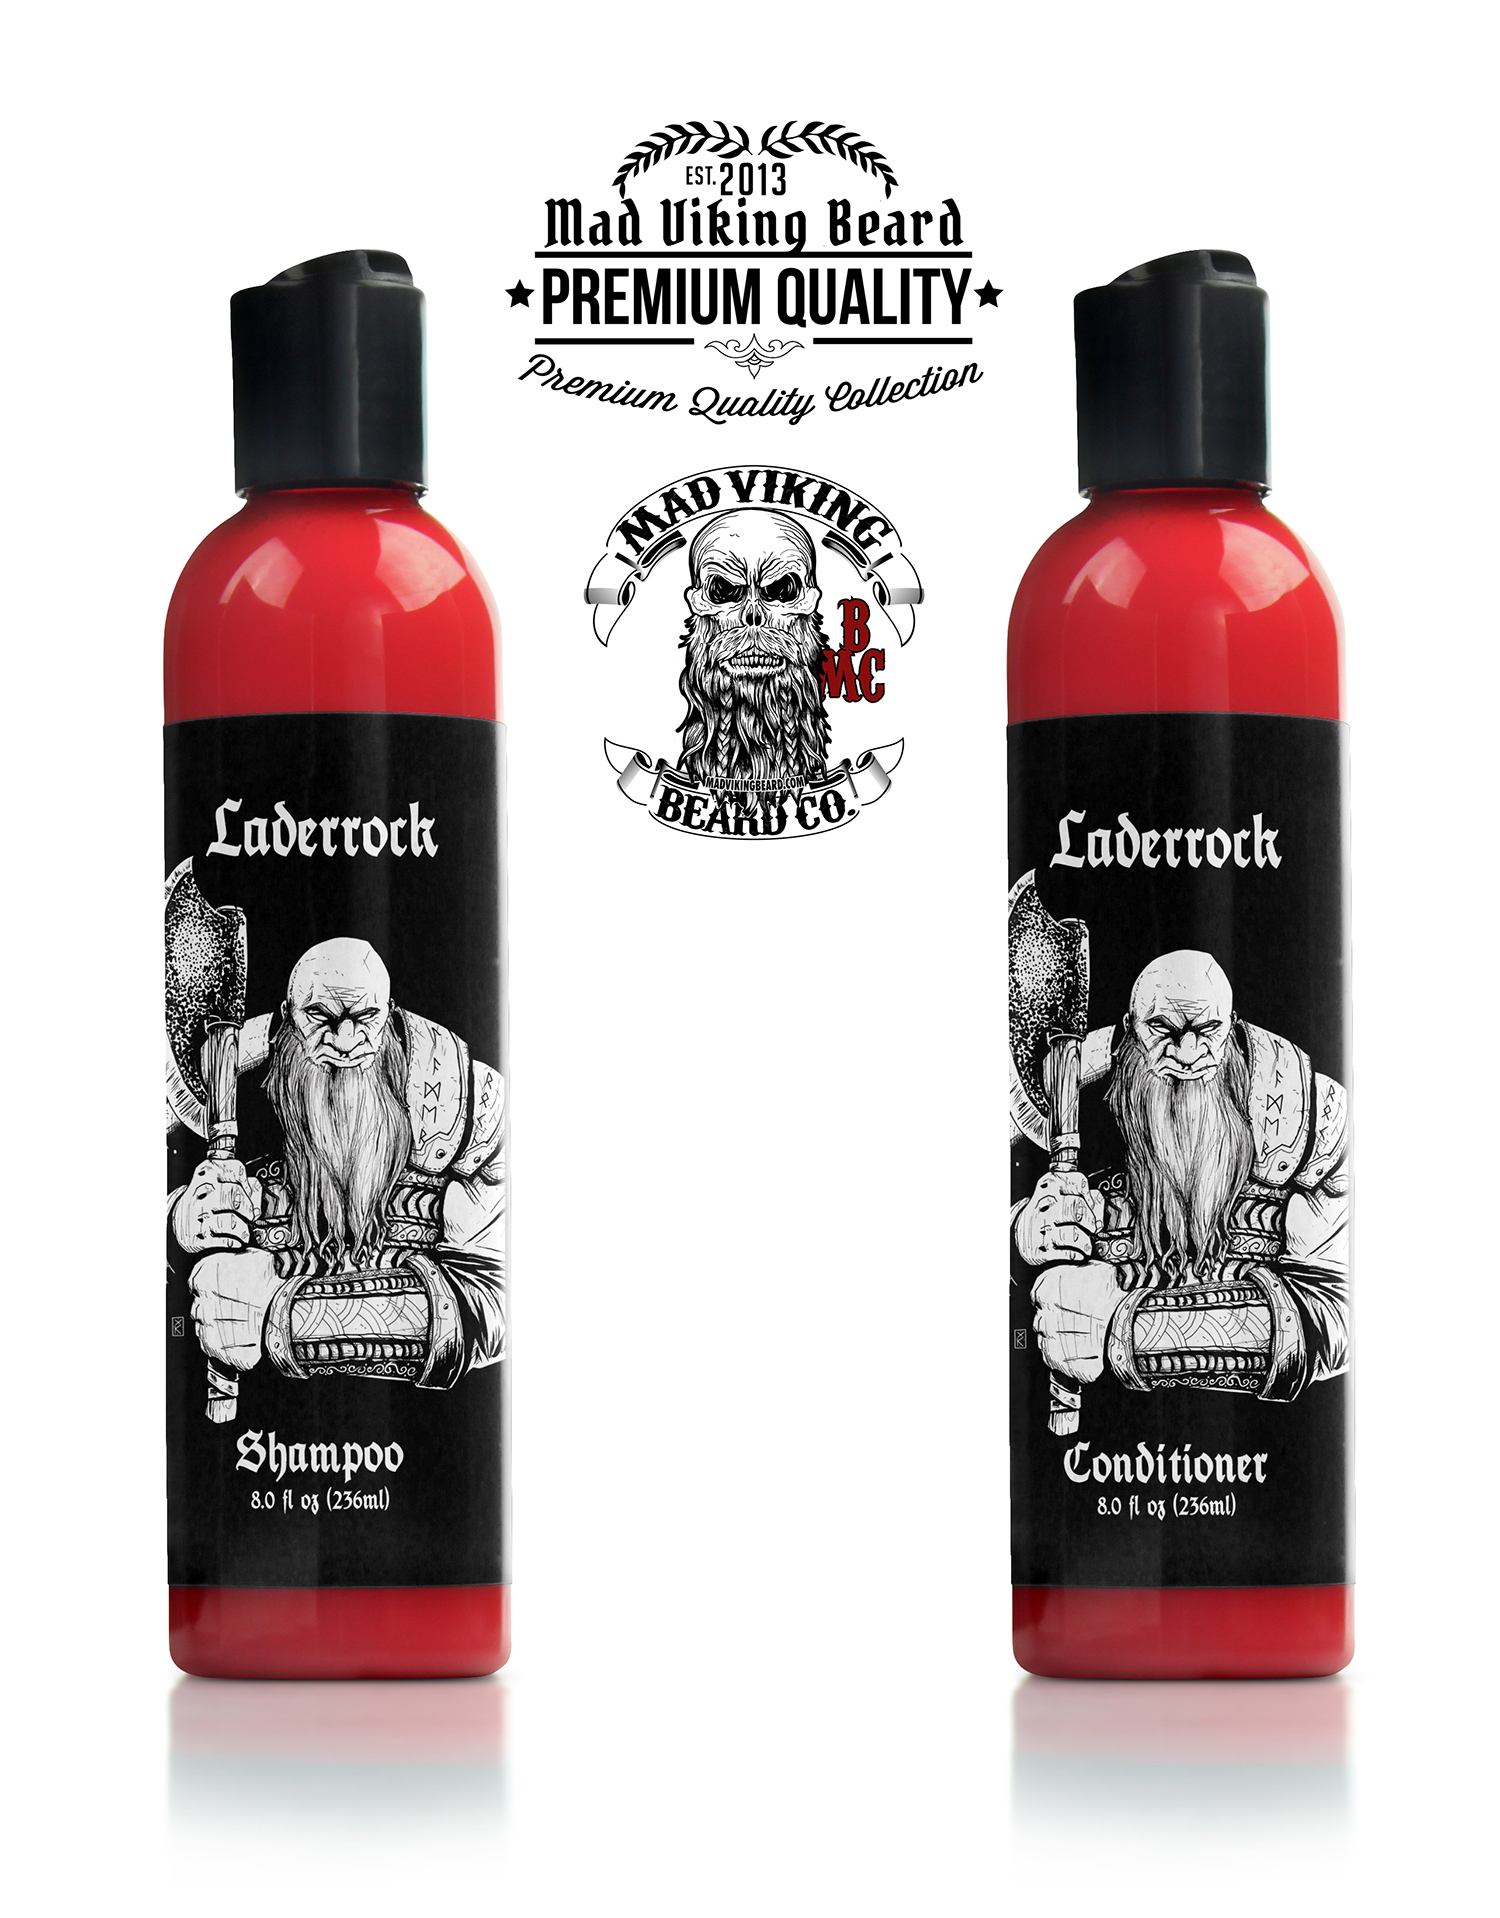 Mad Viking Laderrock Shampoo & Conditioner